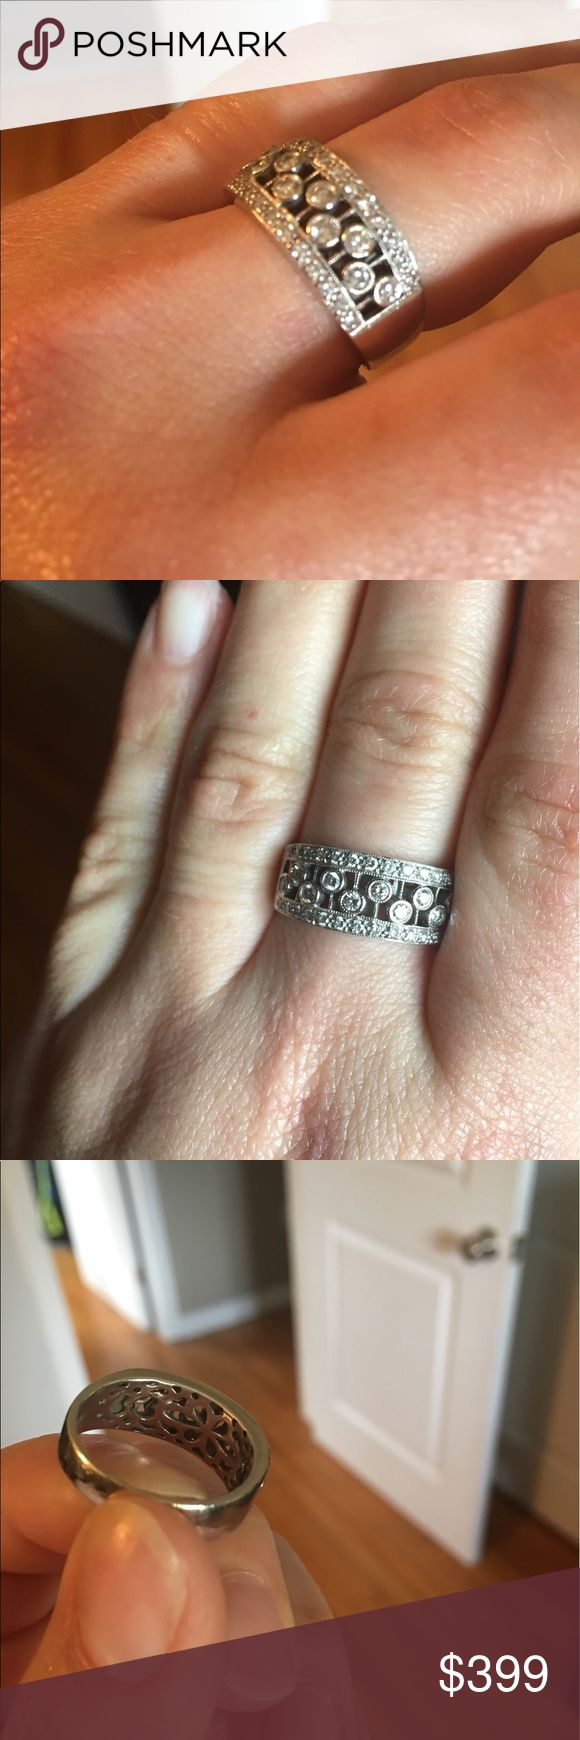 1/2 karat total Diamond ring 14kt White gold an diamond ring. Size 9. Love it just never wear it anymore. No trades Jewelry Rings